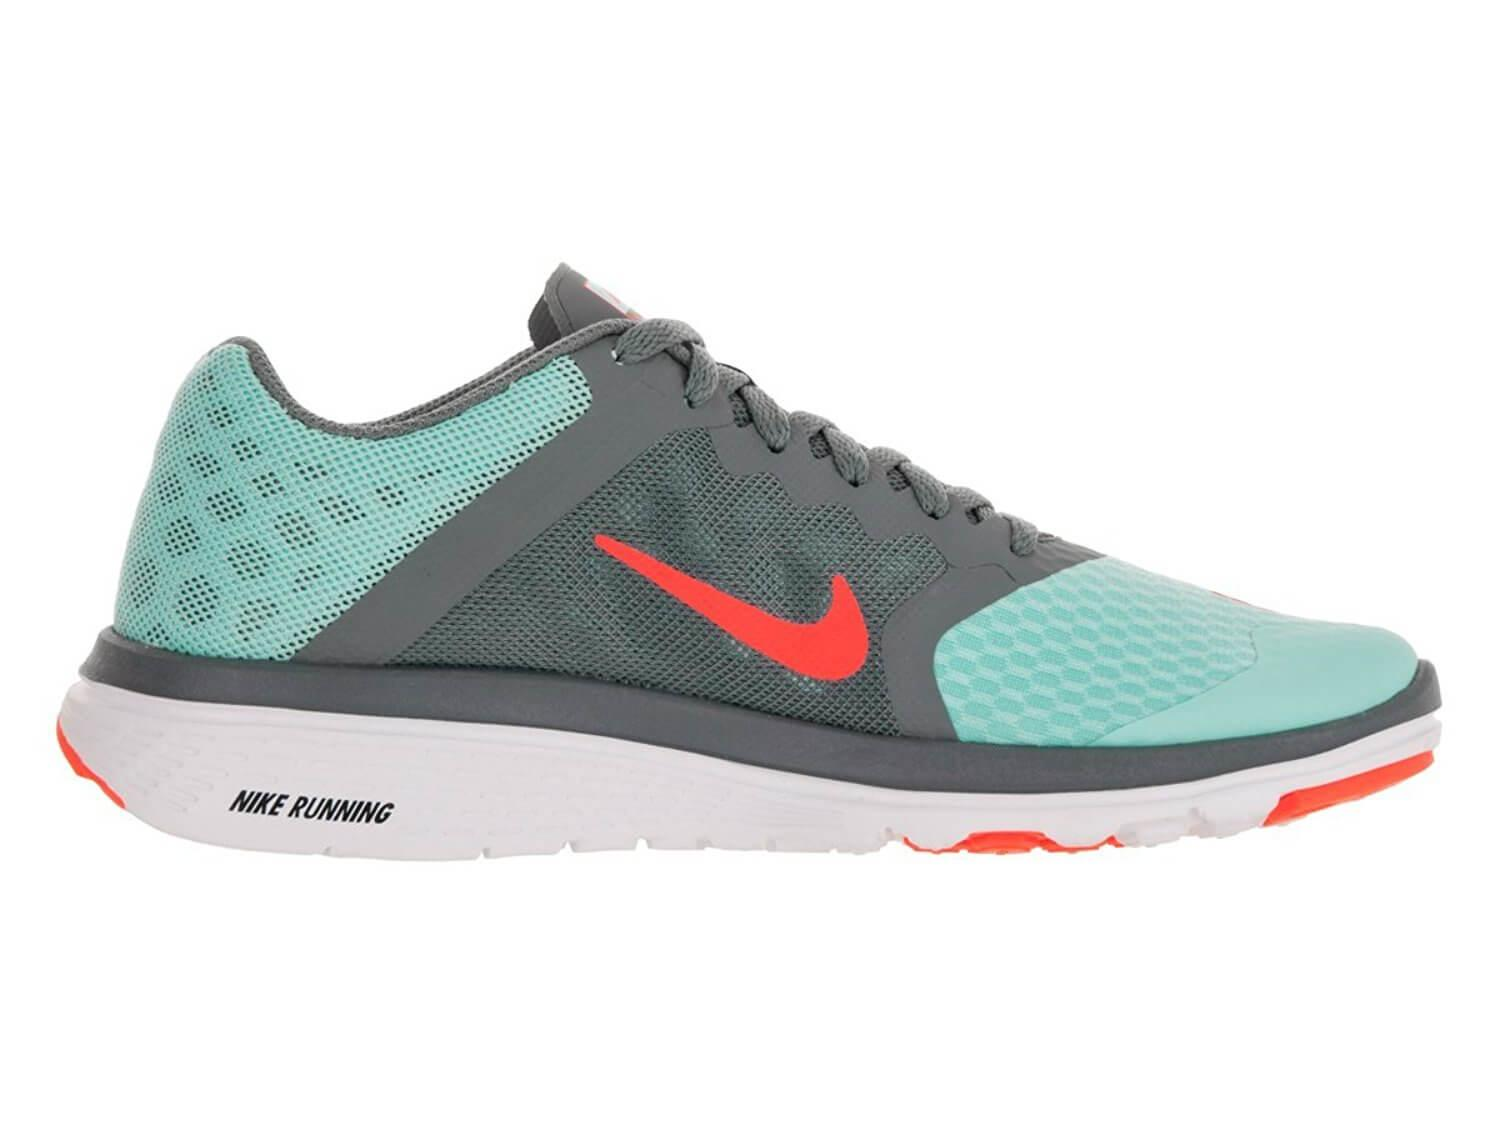 392b798f7e53 Nike FS Lite Run 3 Reviewed - To Buy or Not in Apr 2019